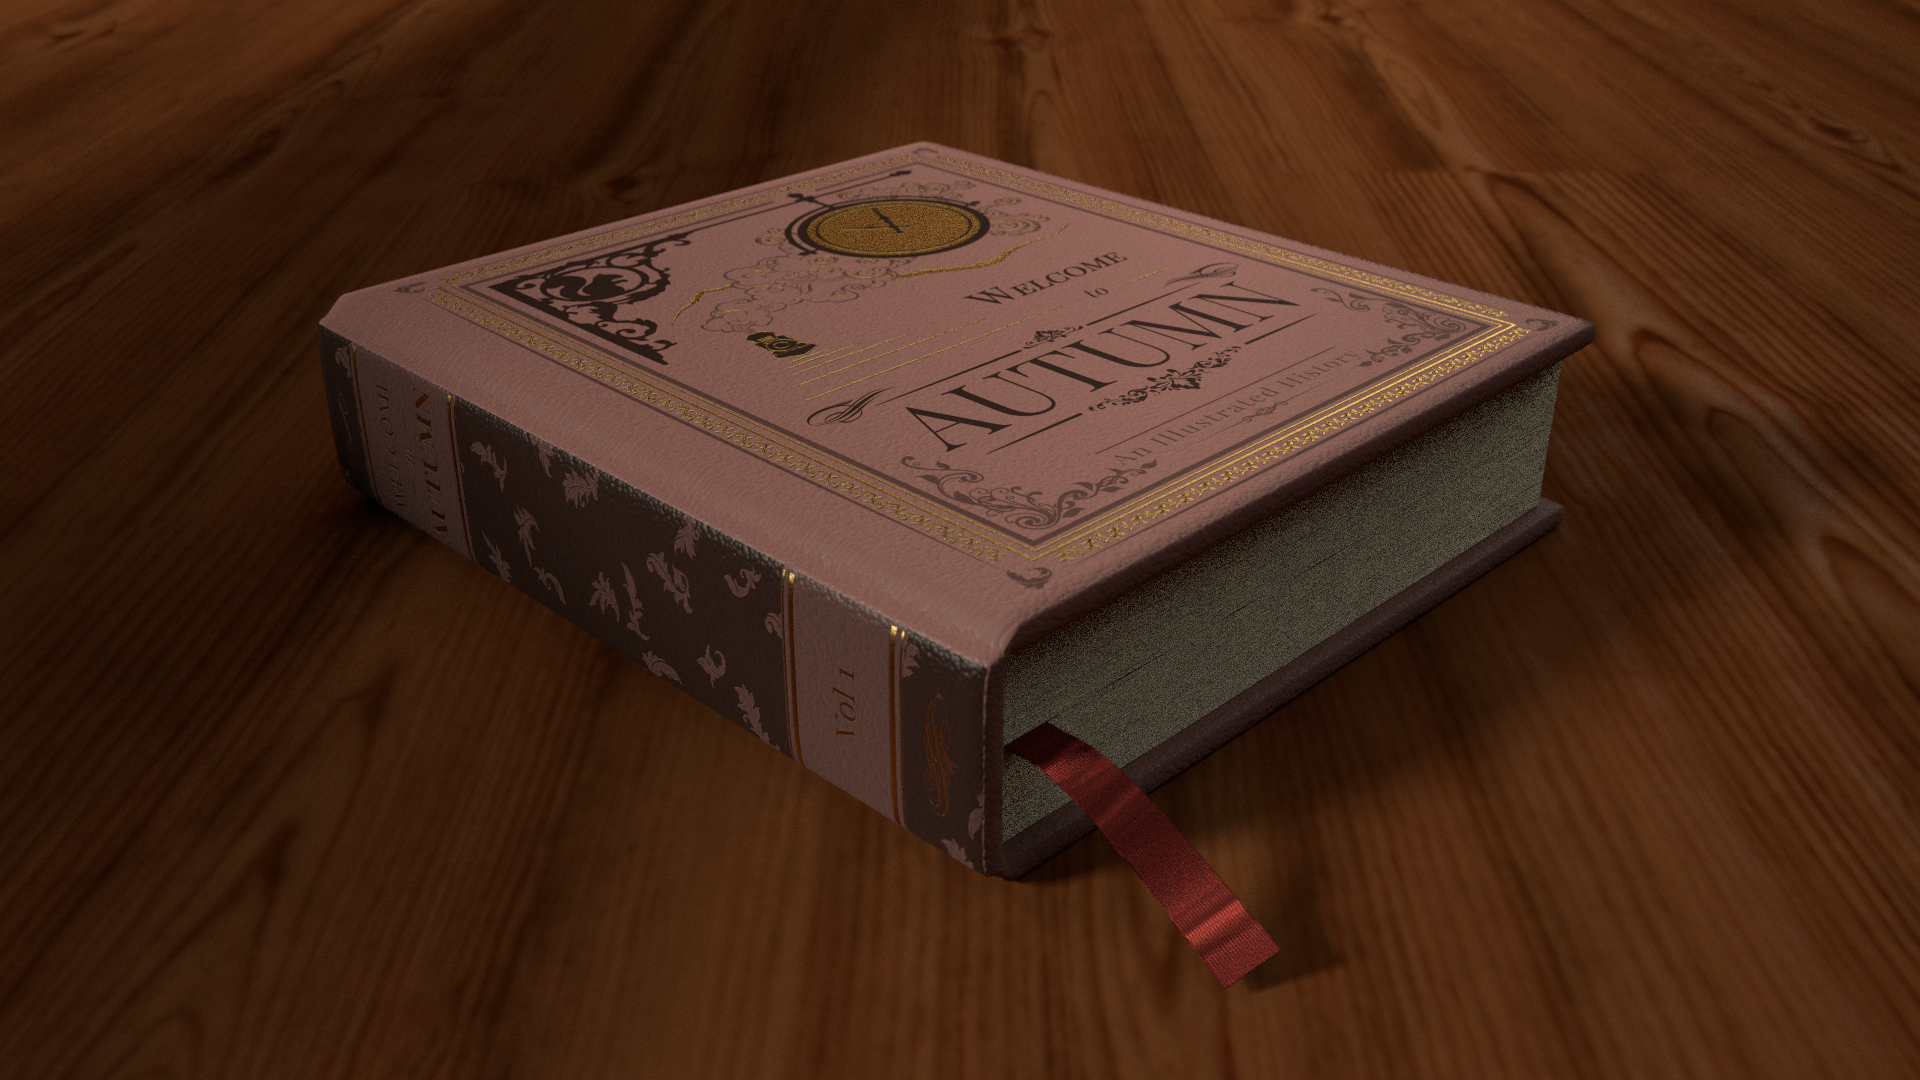 Welcome to Autumn 3d book mockup